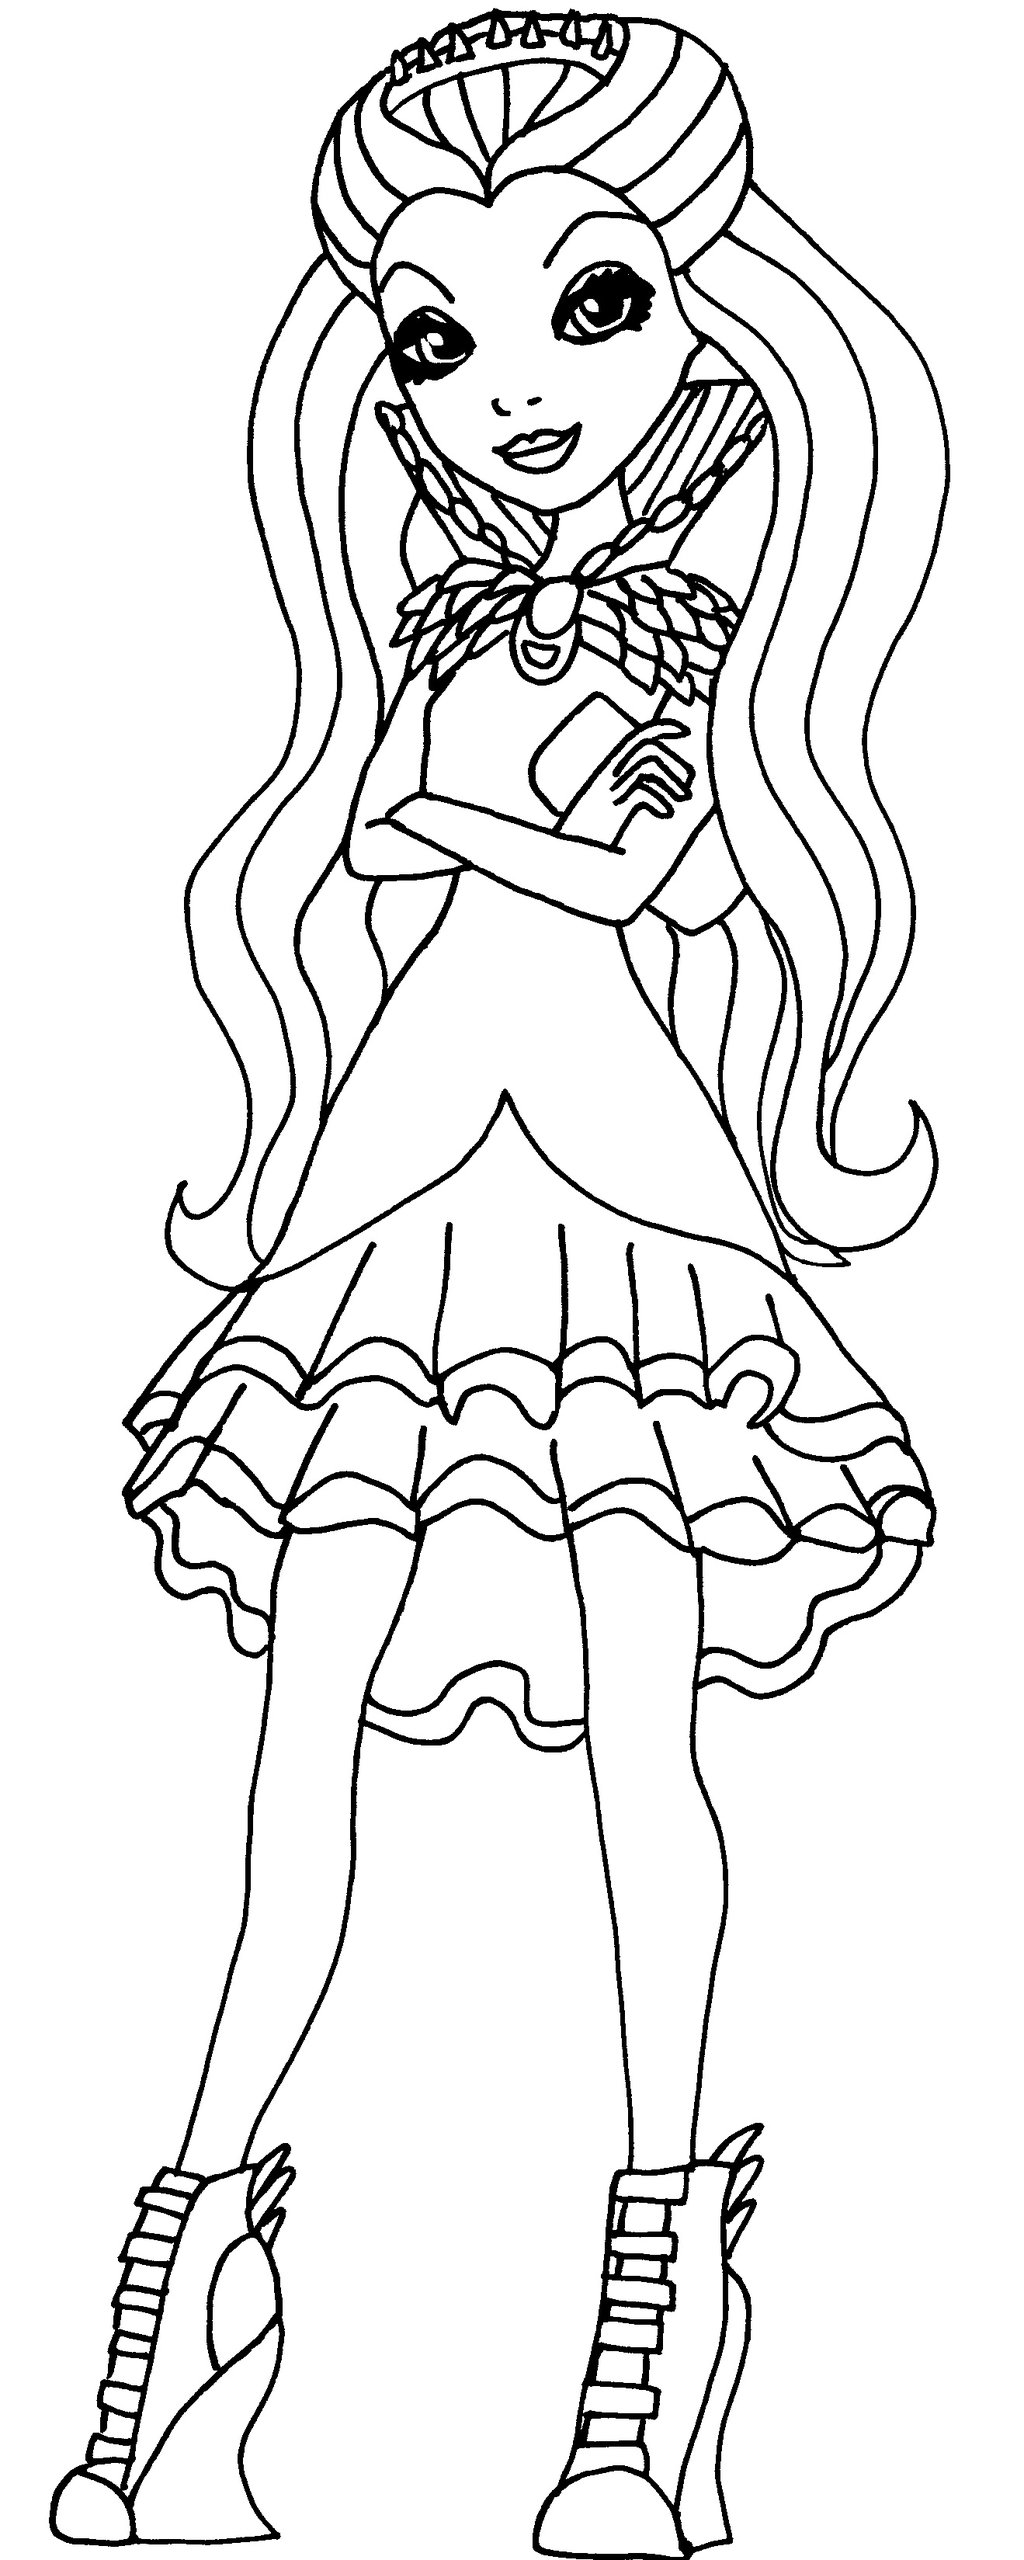 Coloriage Ever After High Lizzie Hearts Coloriages Free Coloring